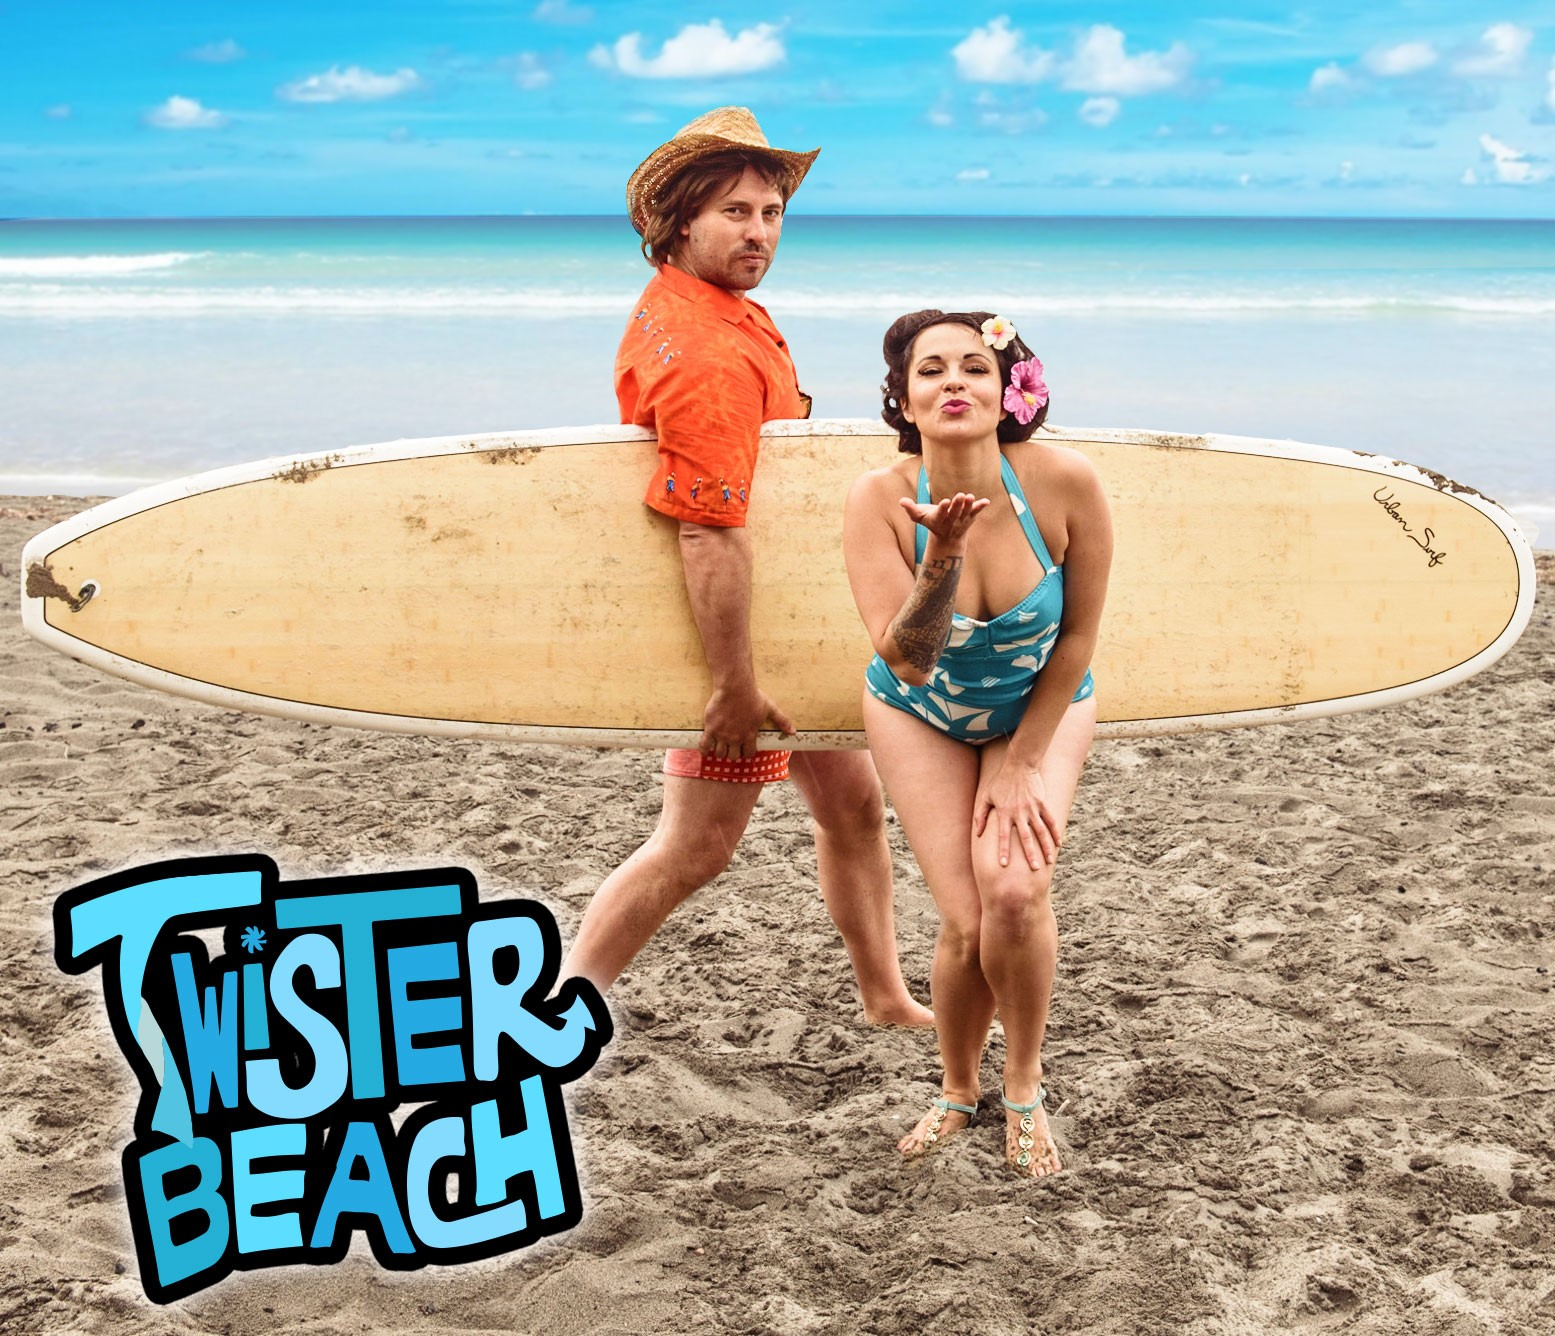 Twister-Beach-Mark-and-Opal-cropped-square-with-logo.jpg